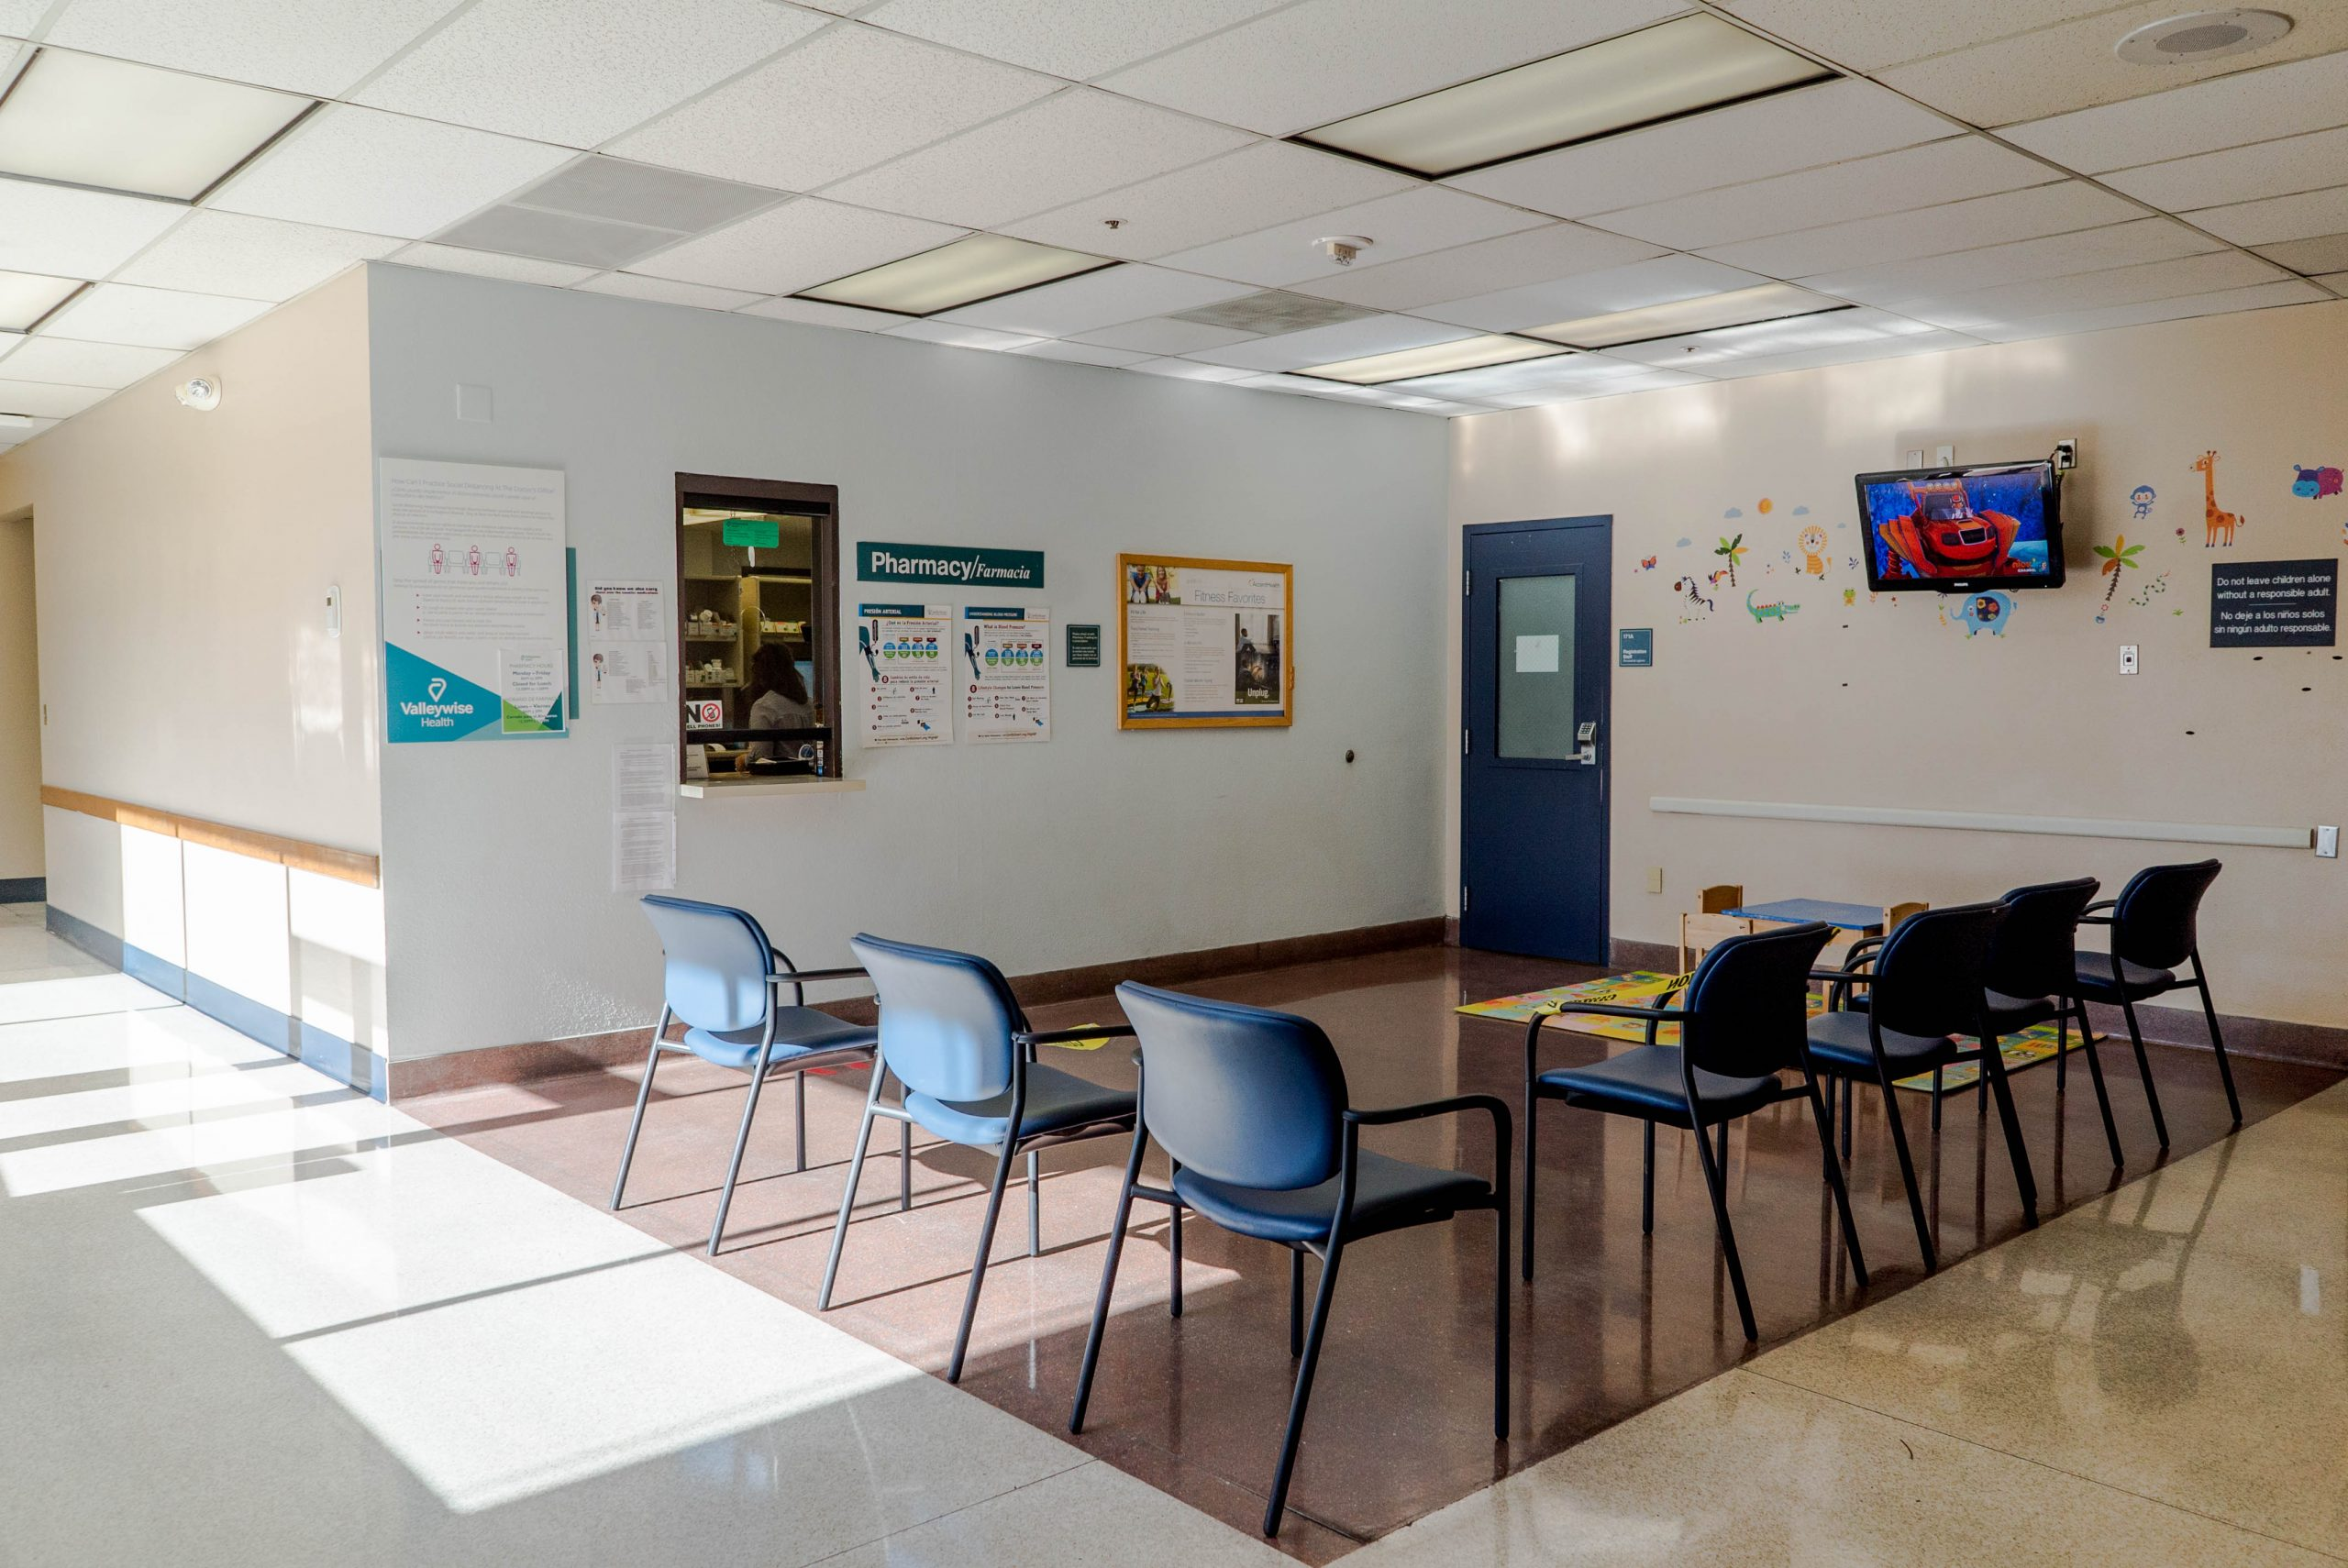 medical center waiting room with blue chairs